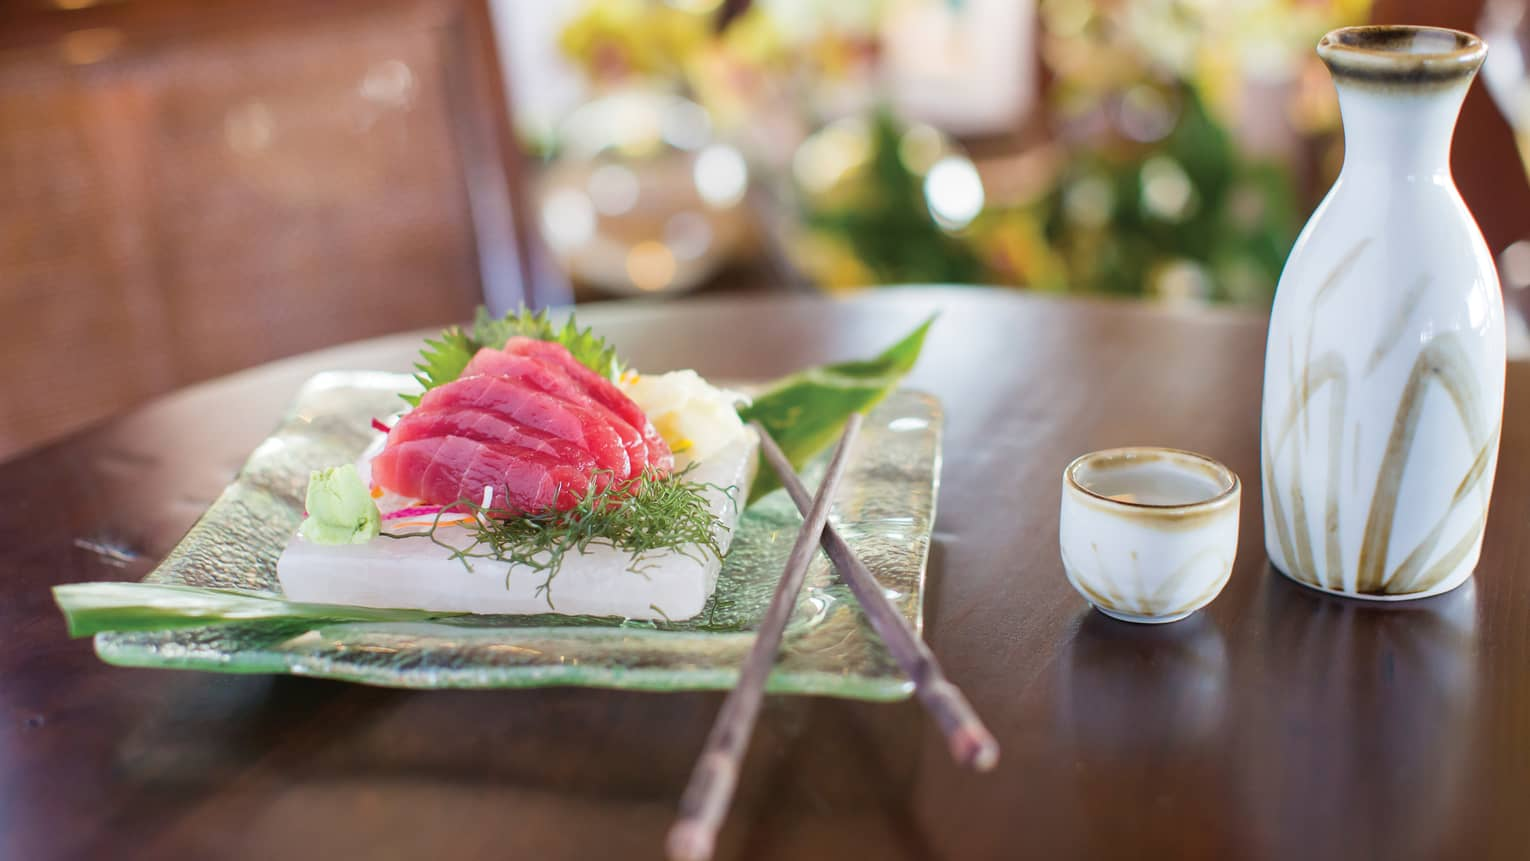 Slices of raw sashimi fish on glass plate next to sake cups